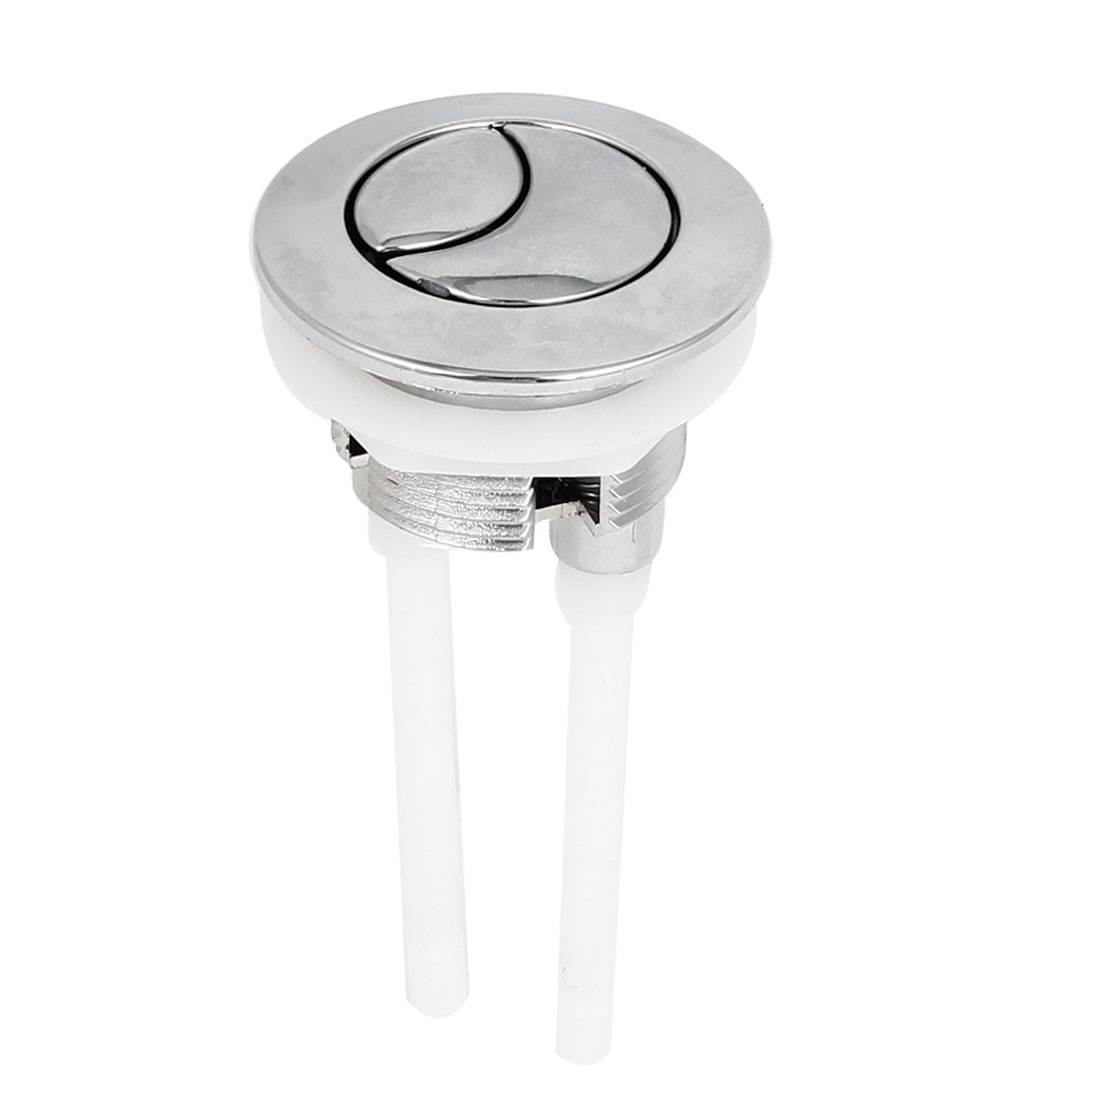 Round Shape 37mm Dia Thread Toilet Water Tank Double Push Button